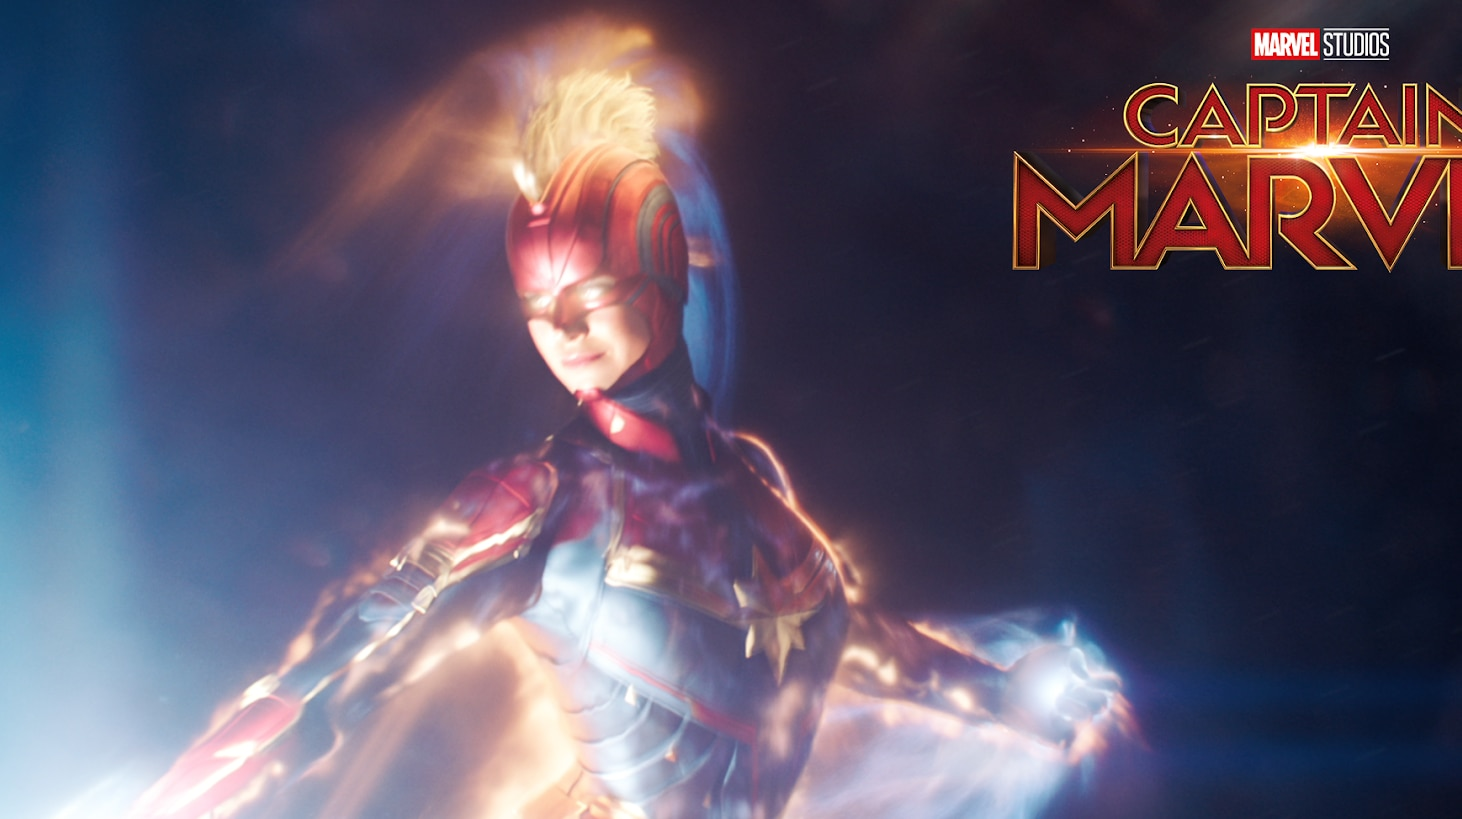 Marvel Studios': Captain Marvel – In Theaters March 8